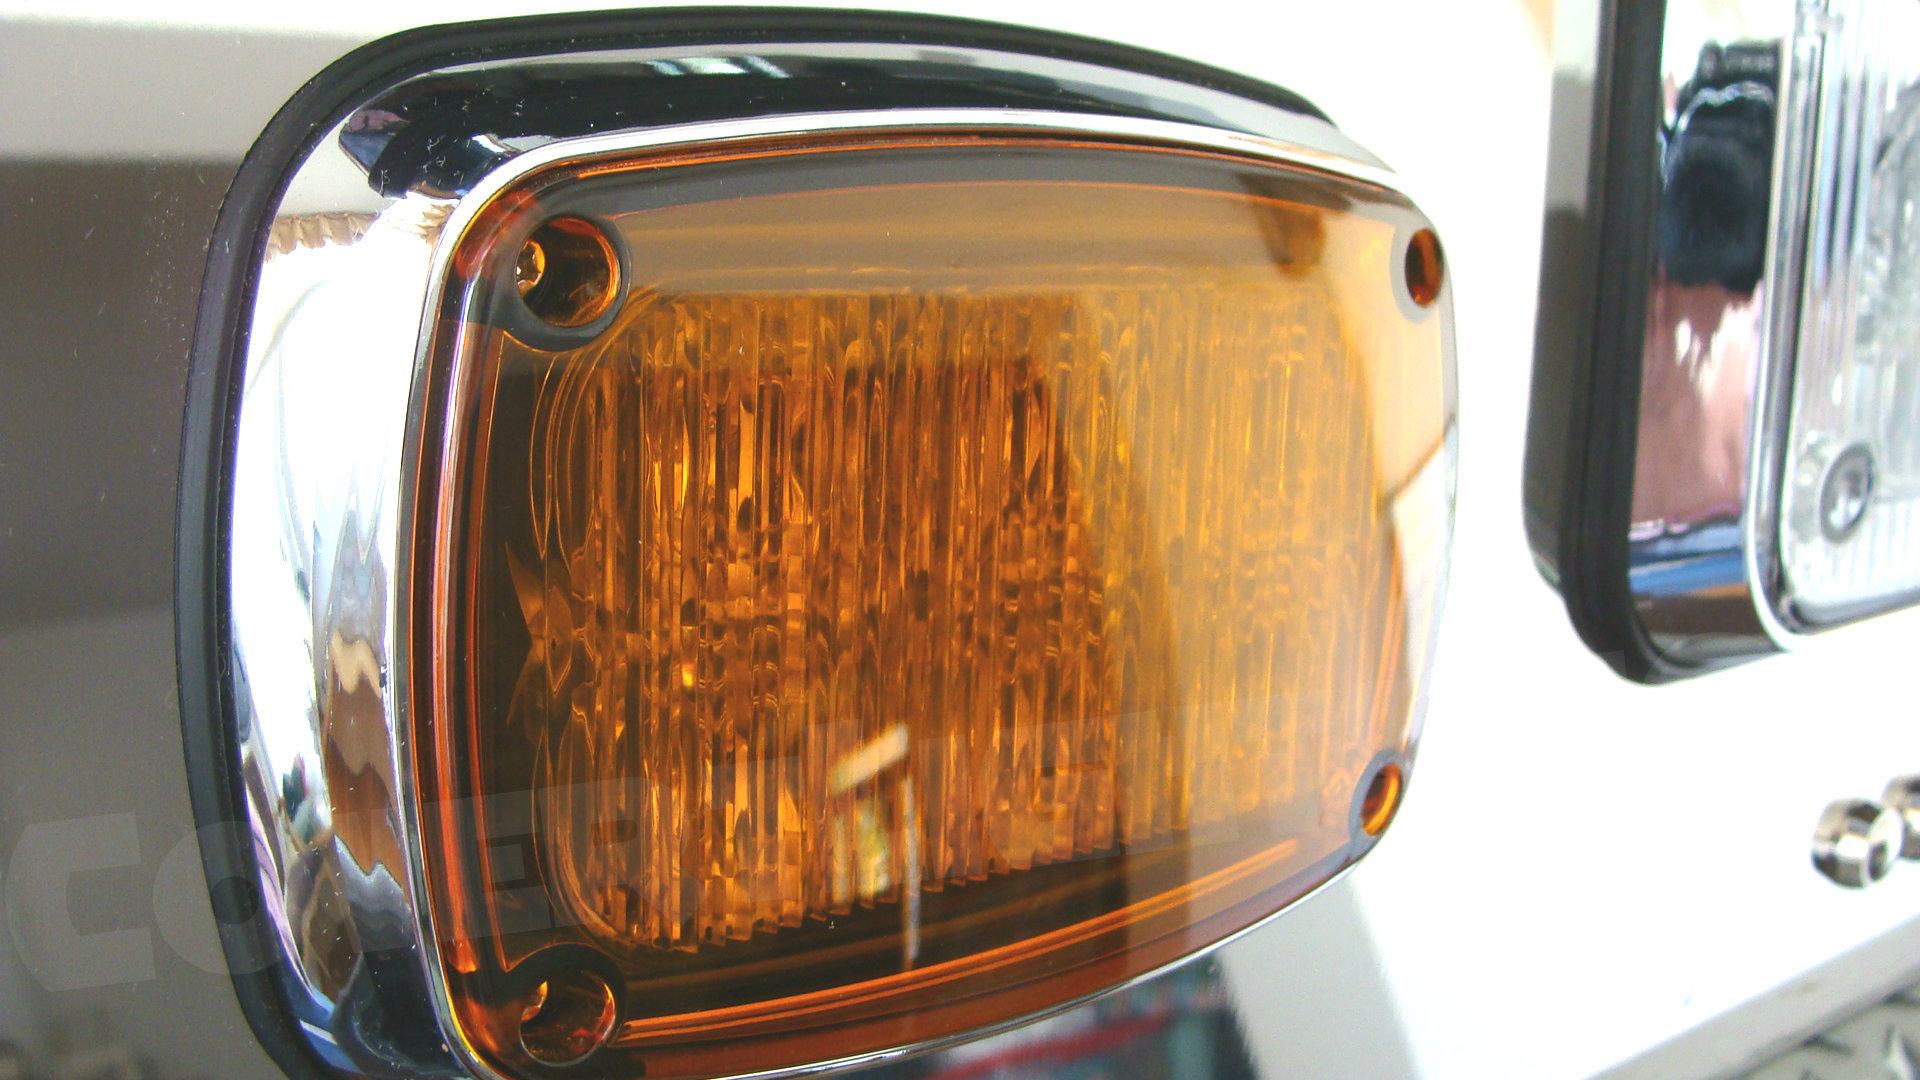 k40-amber-lens-tecniq-covert-lights.jpg